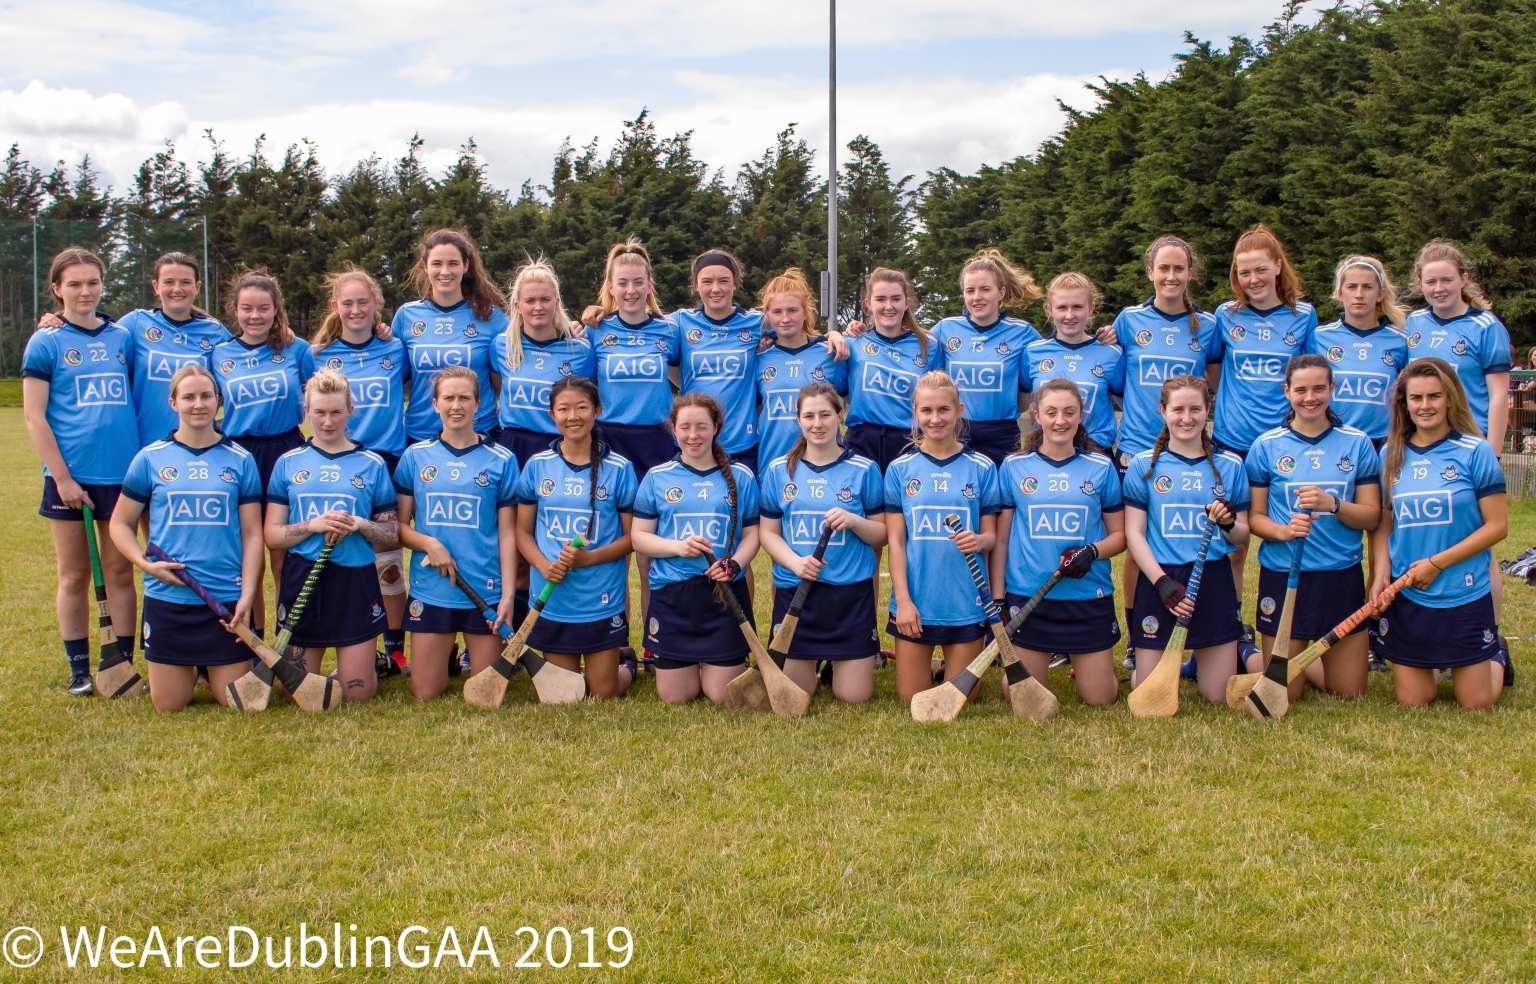 The Dublin Intermediate Camogie Squad pictured before a game, their team has been named to play Antrim and it includes six changes from their last game